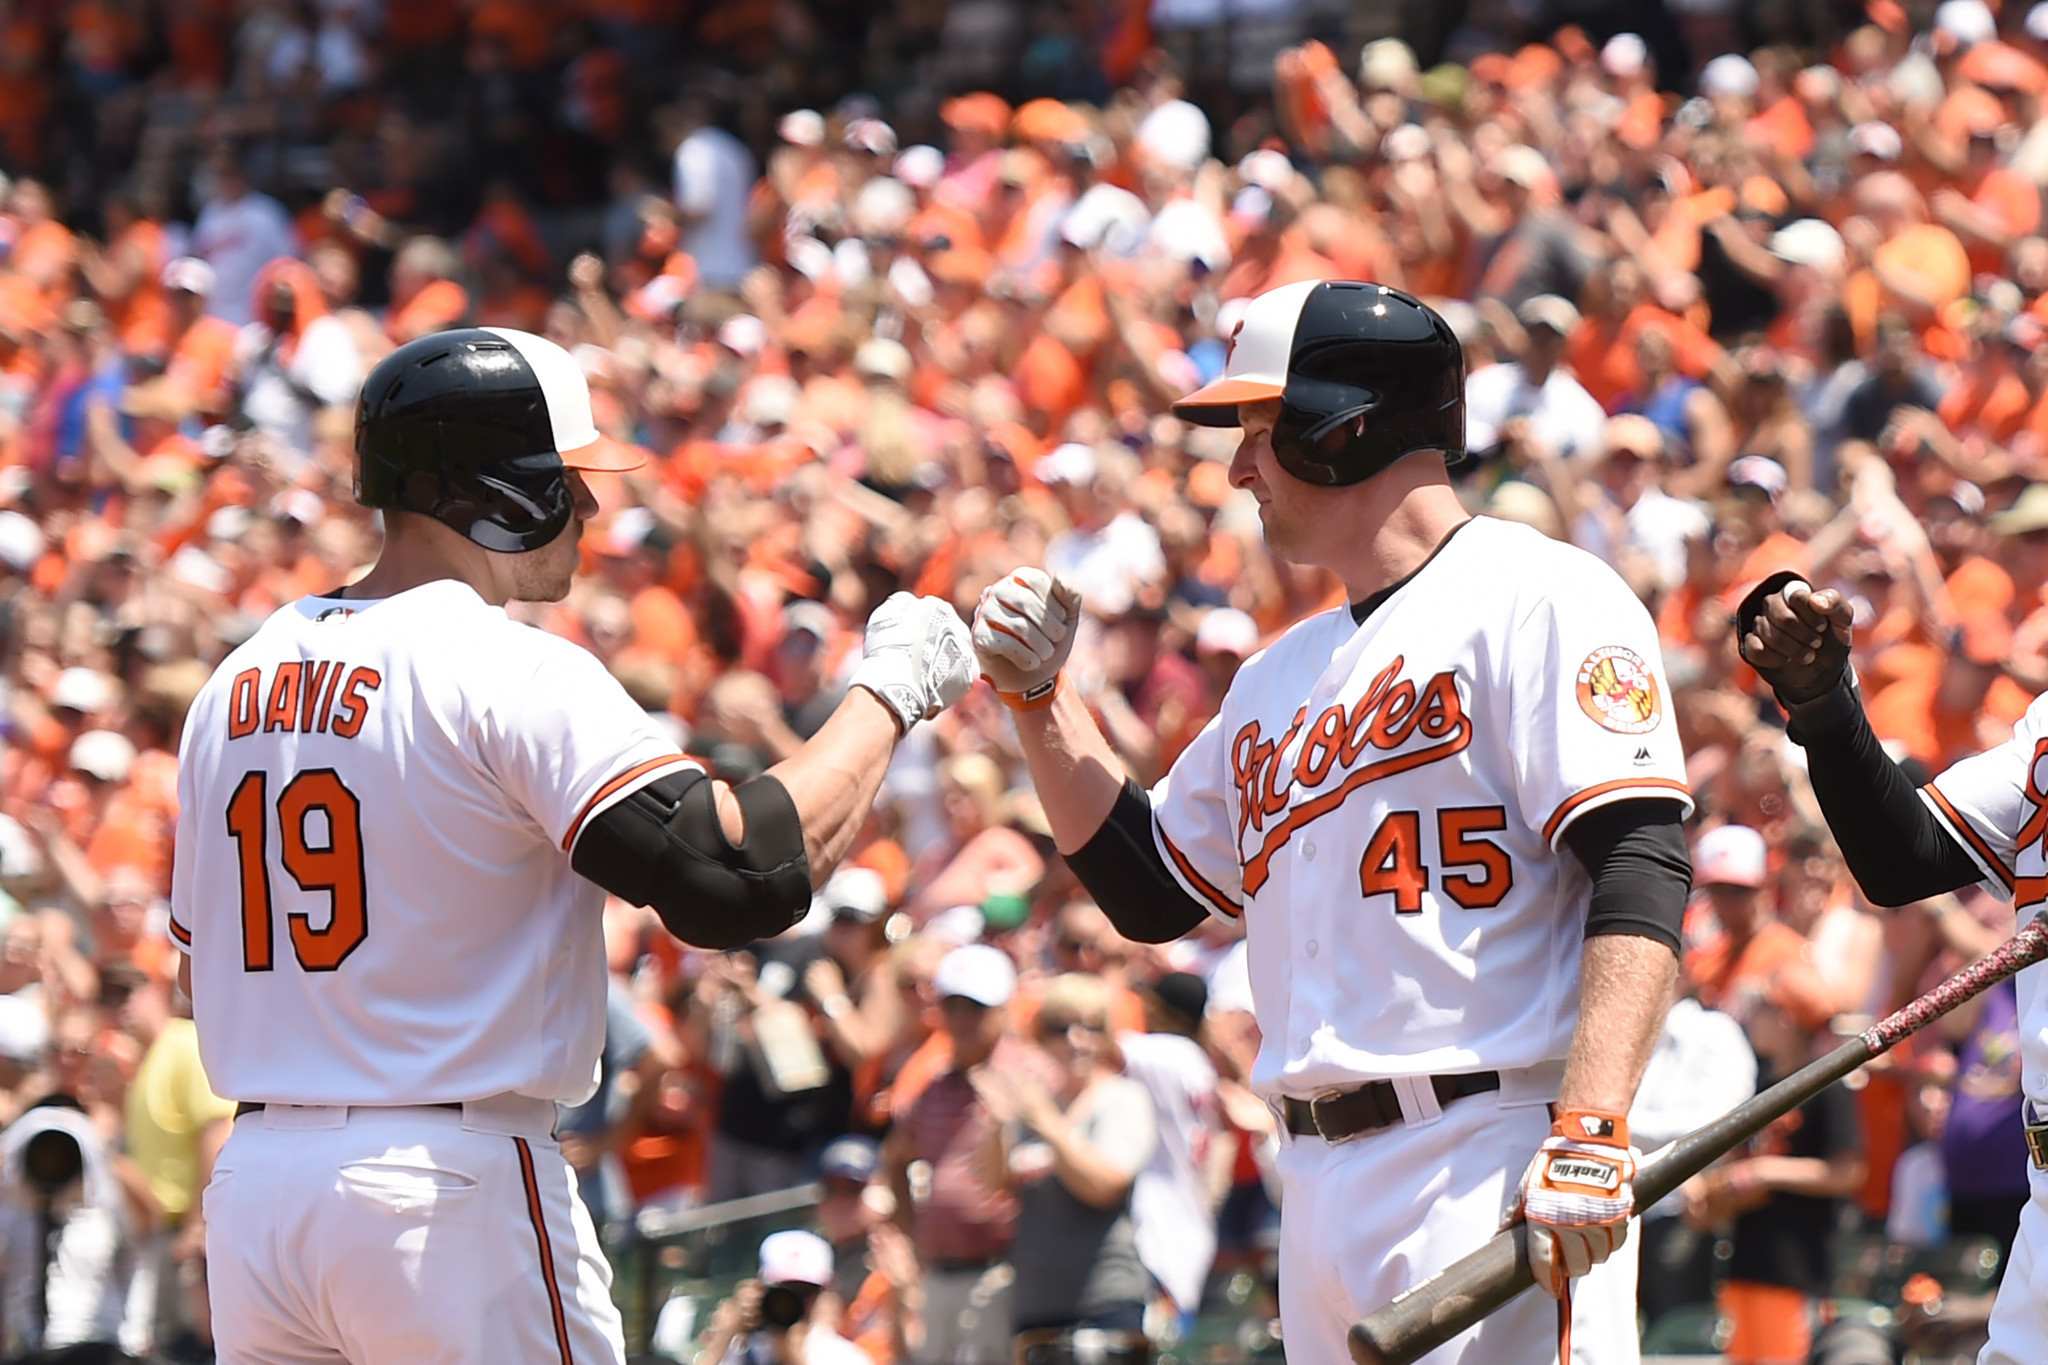 Bal-orioles-on-deck-what-to-watch-friday-at-mariners-20160701